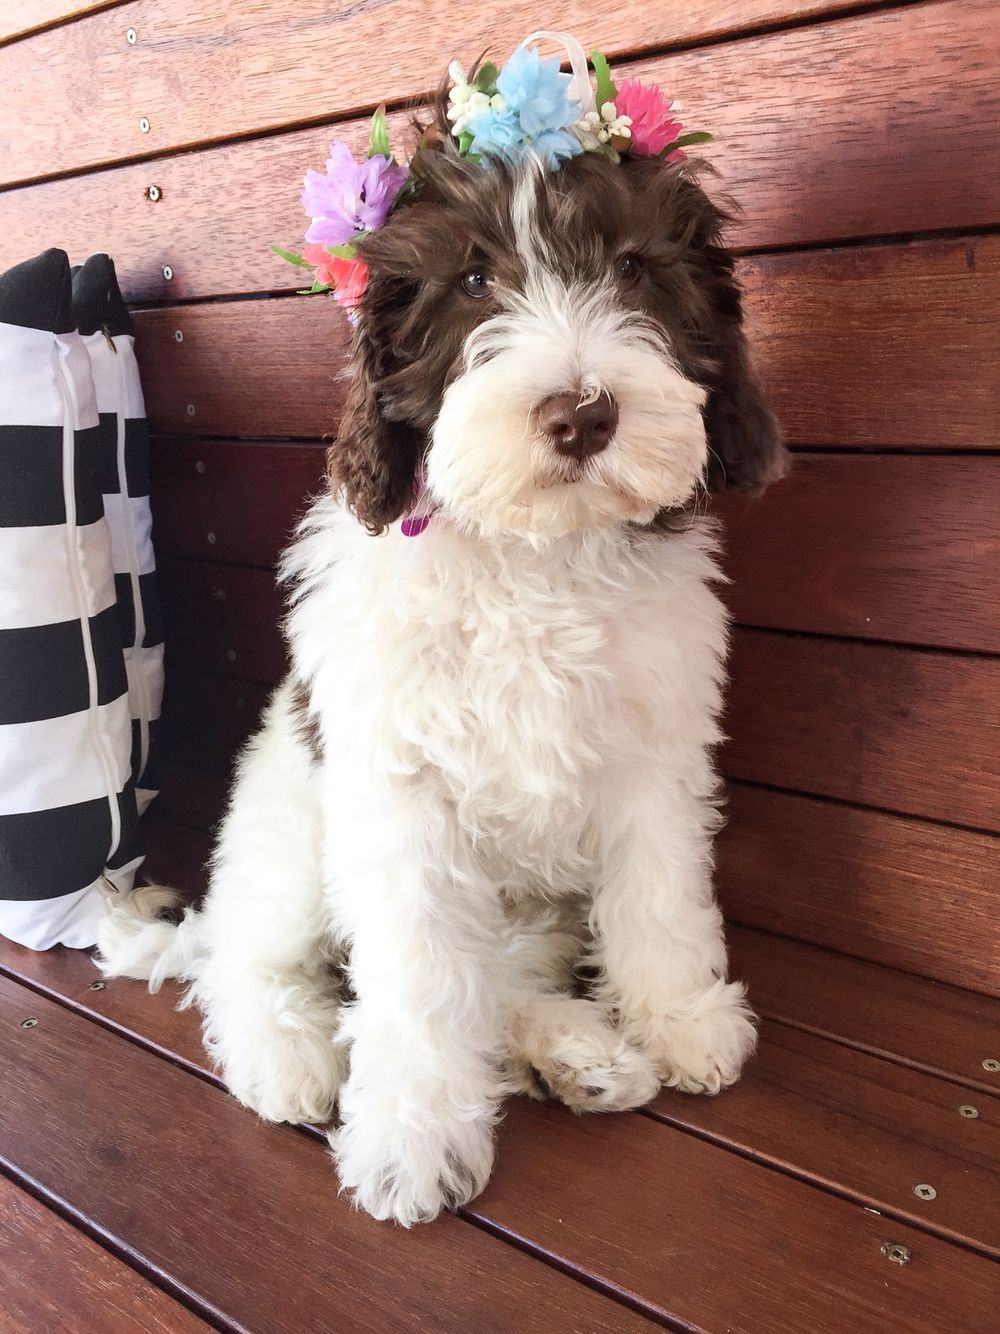 14 Week Old Sophie Australian Multi Generational Labradoodle Medium Fleece Coat Labradoodle Dogs Labradoodle Dogs